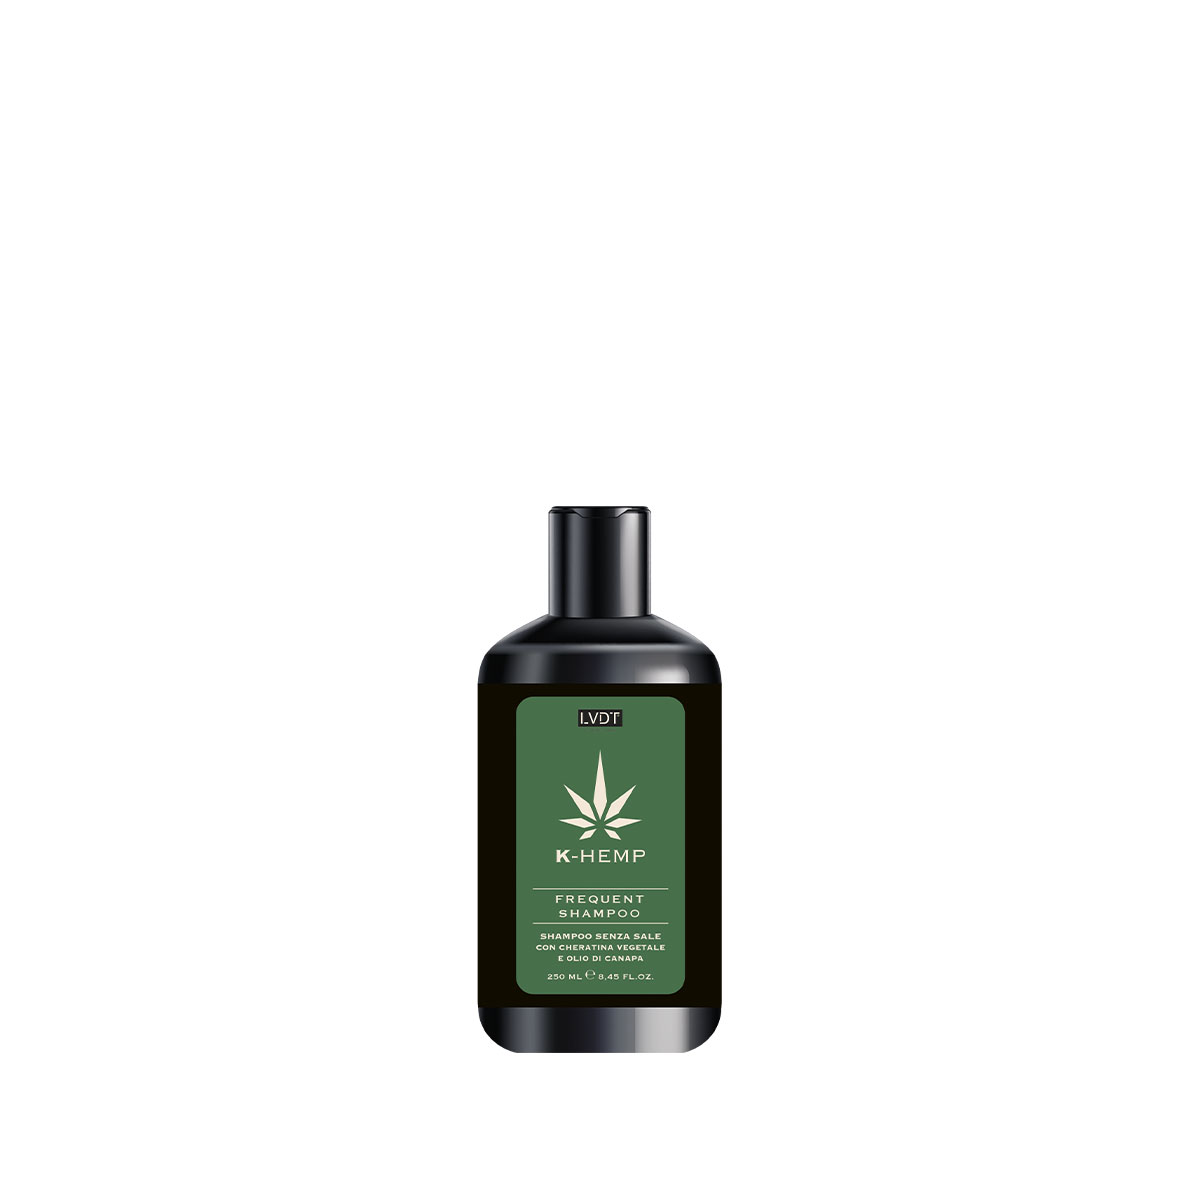 K-hemp Frequent Shampoo 250 Ml